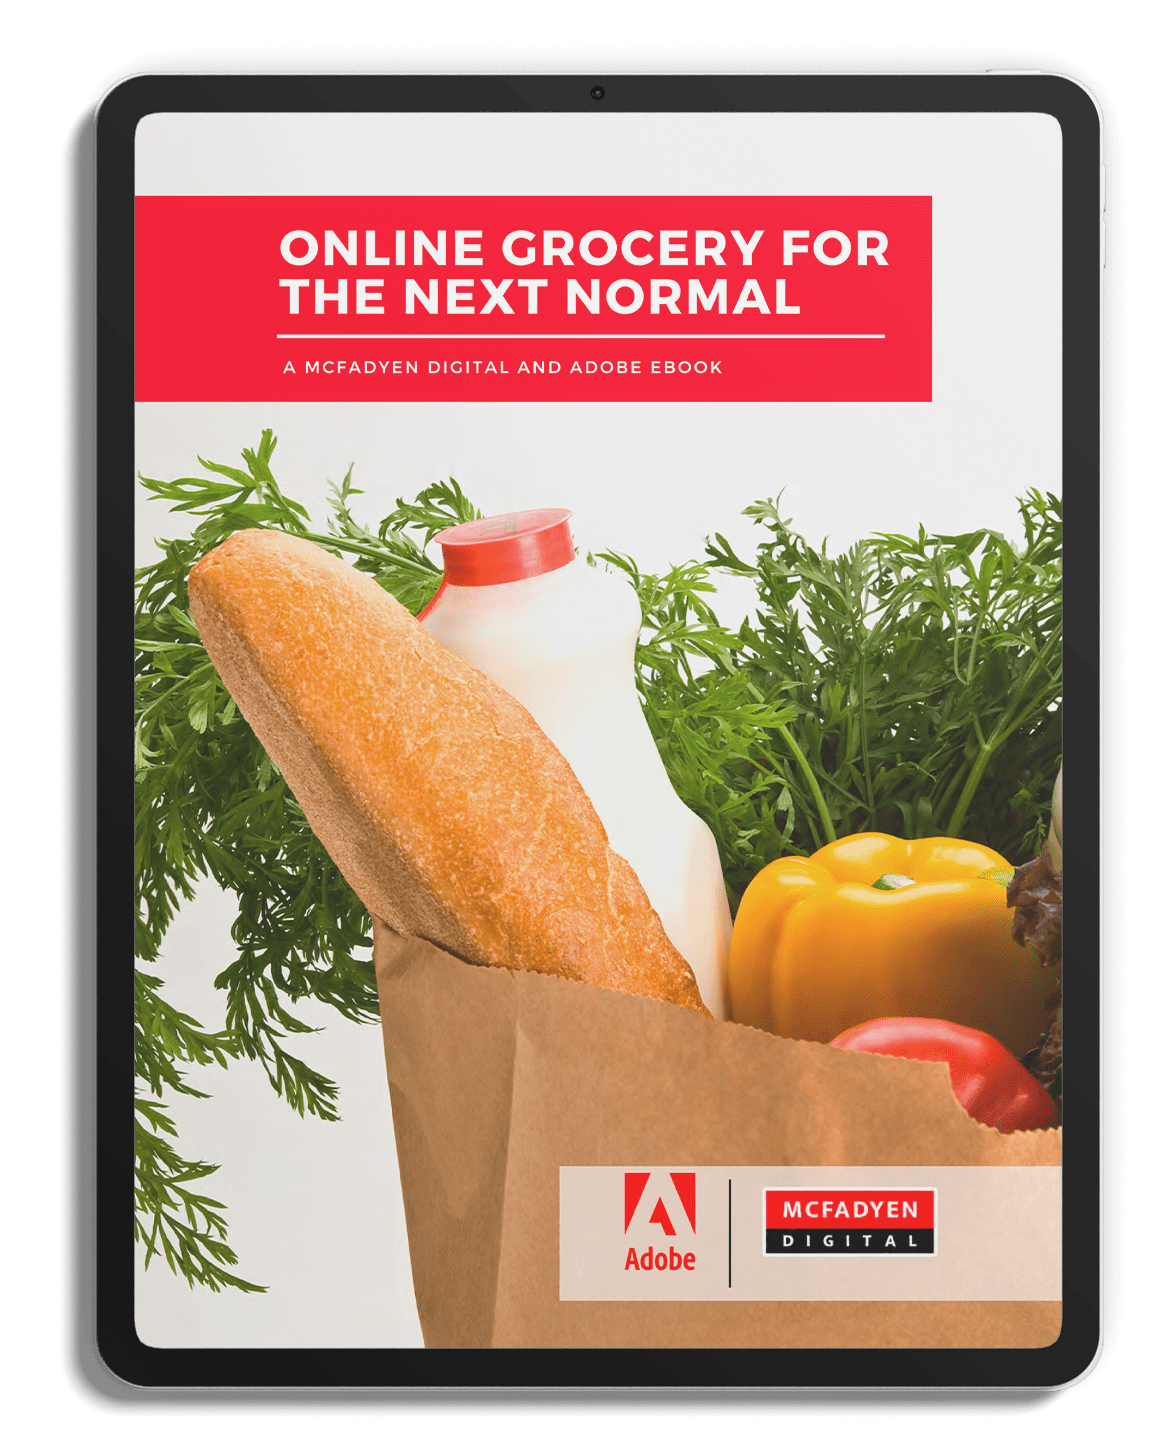 Online Grocery for the Next Normal